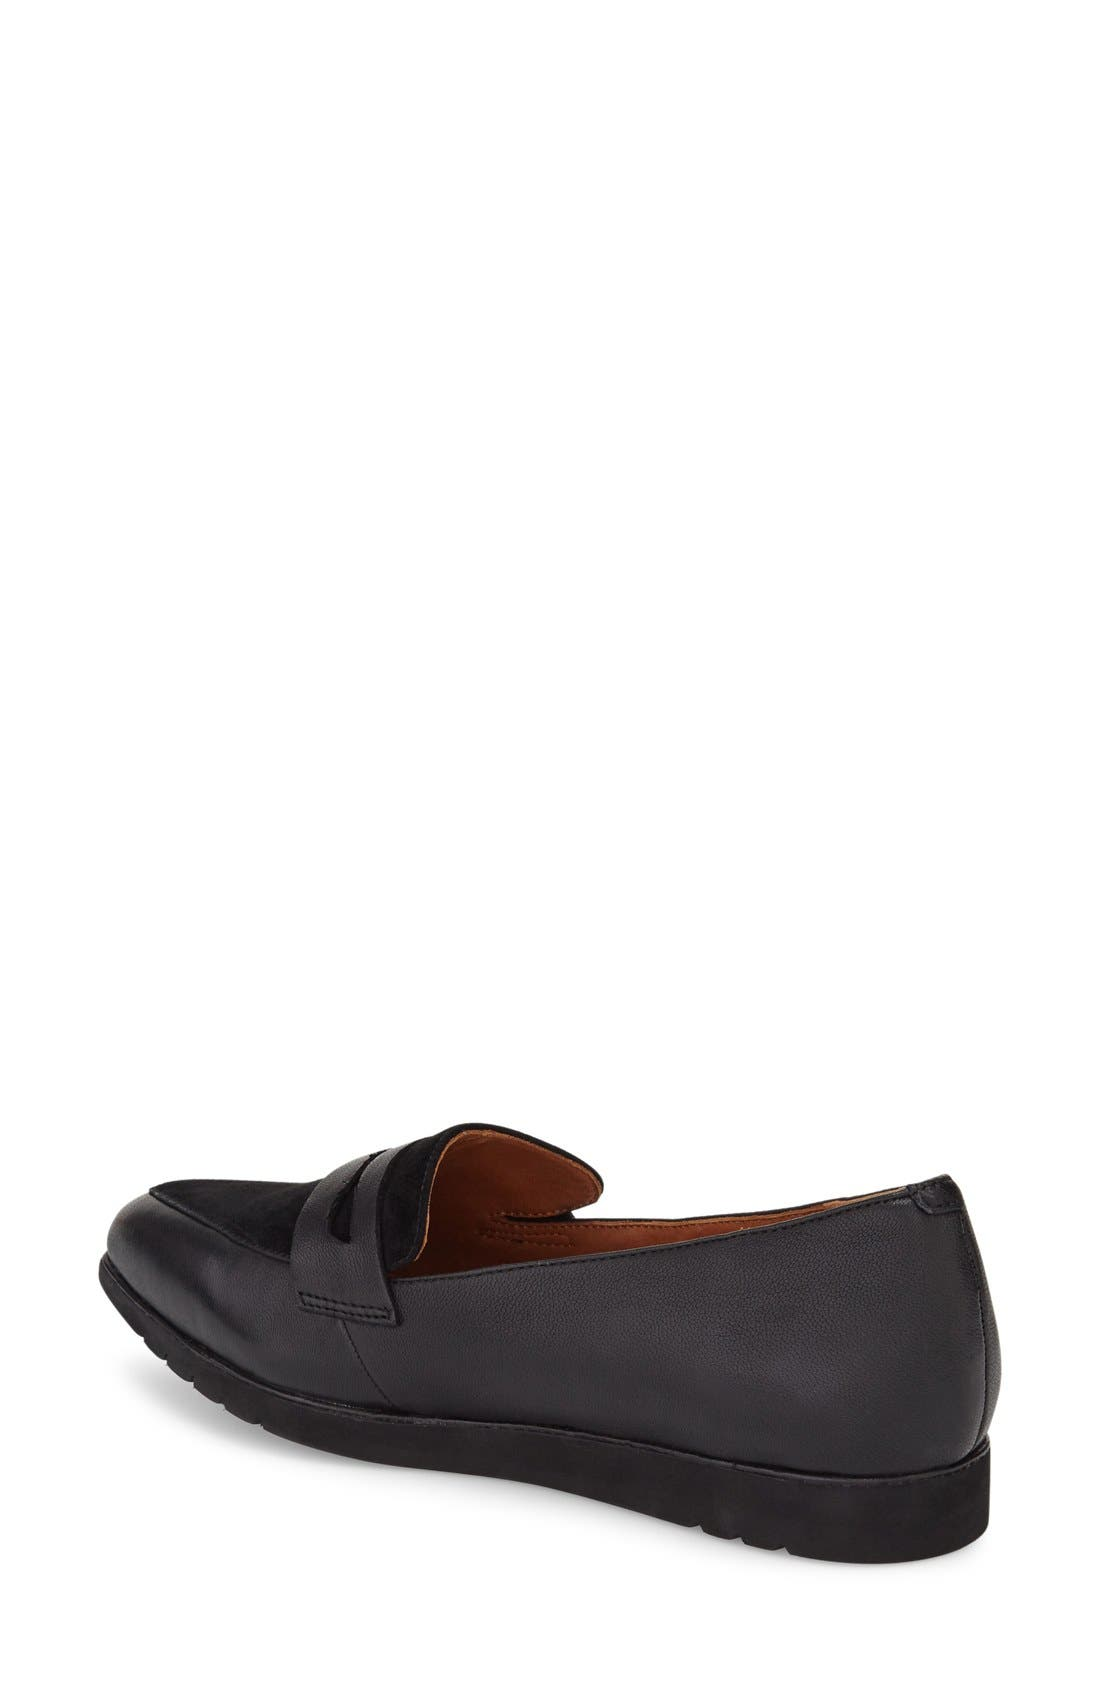 'Miamore' Pointy Toe Loafer,                             Alternate thumbnail 2, color,                             001